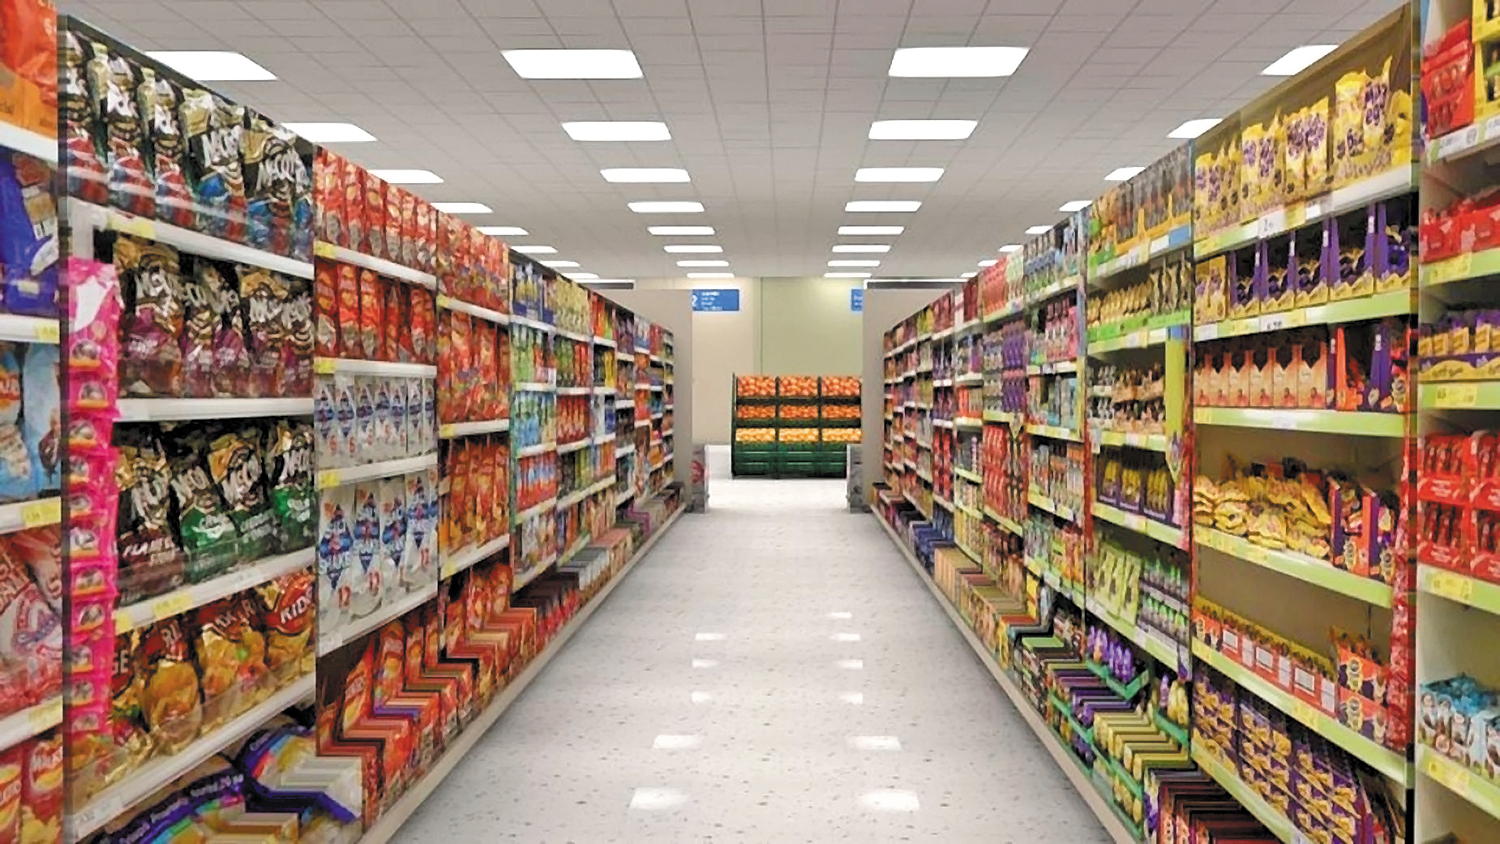 An-aisle-in-a-virtual-reality-Tesco-supermarket